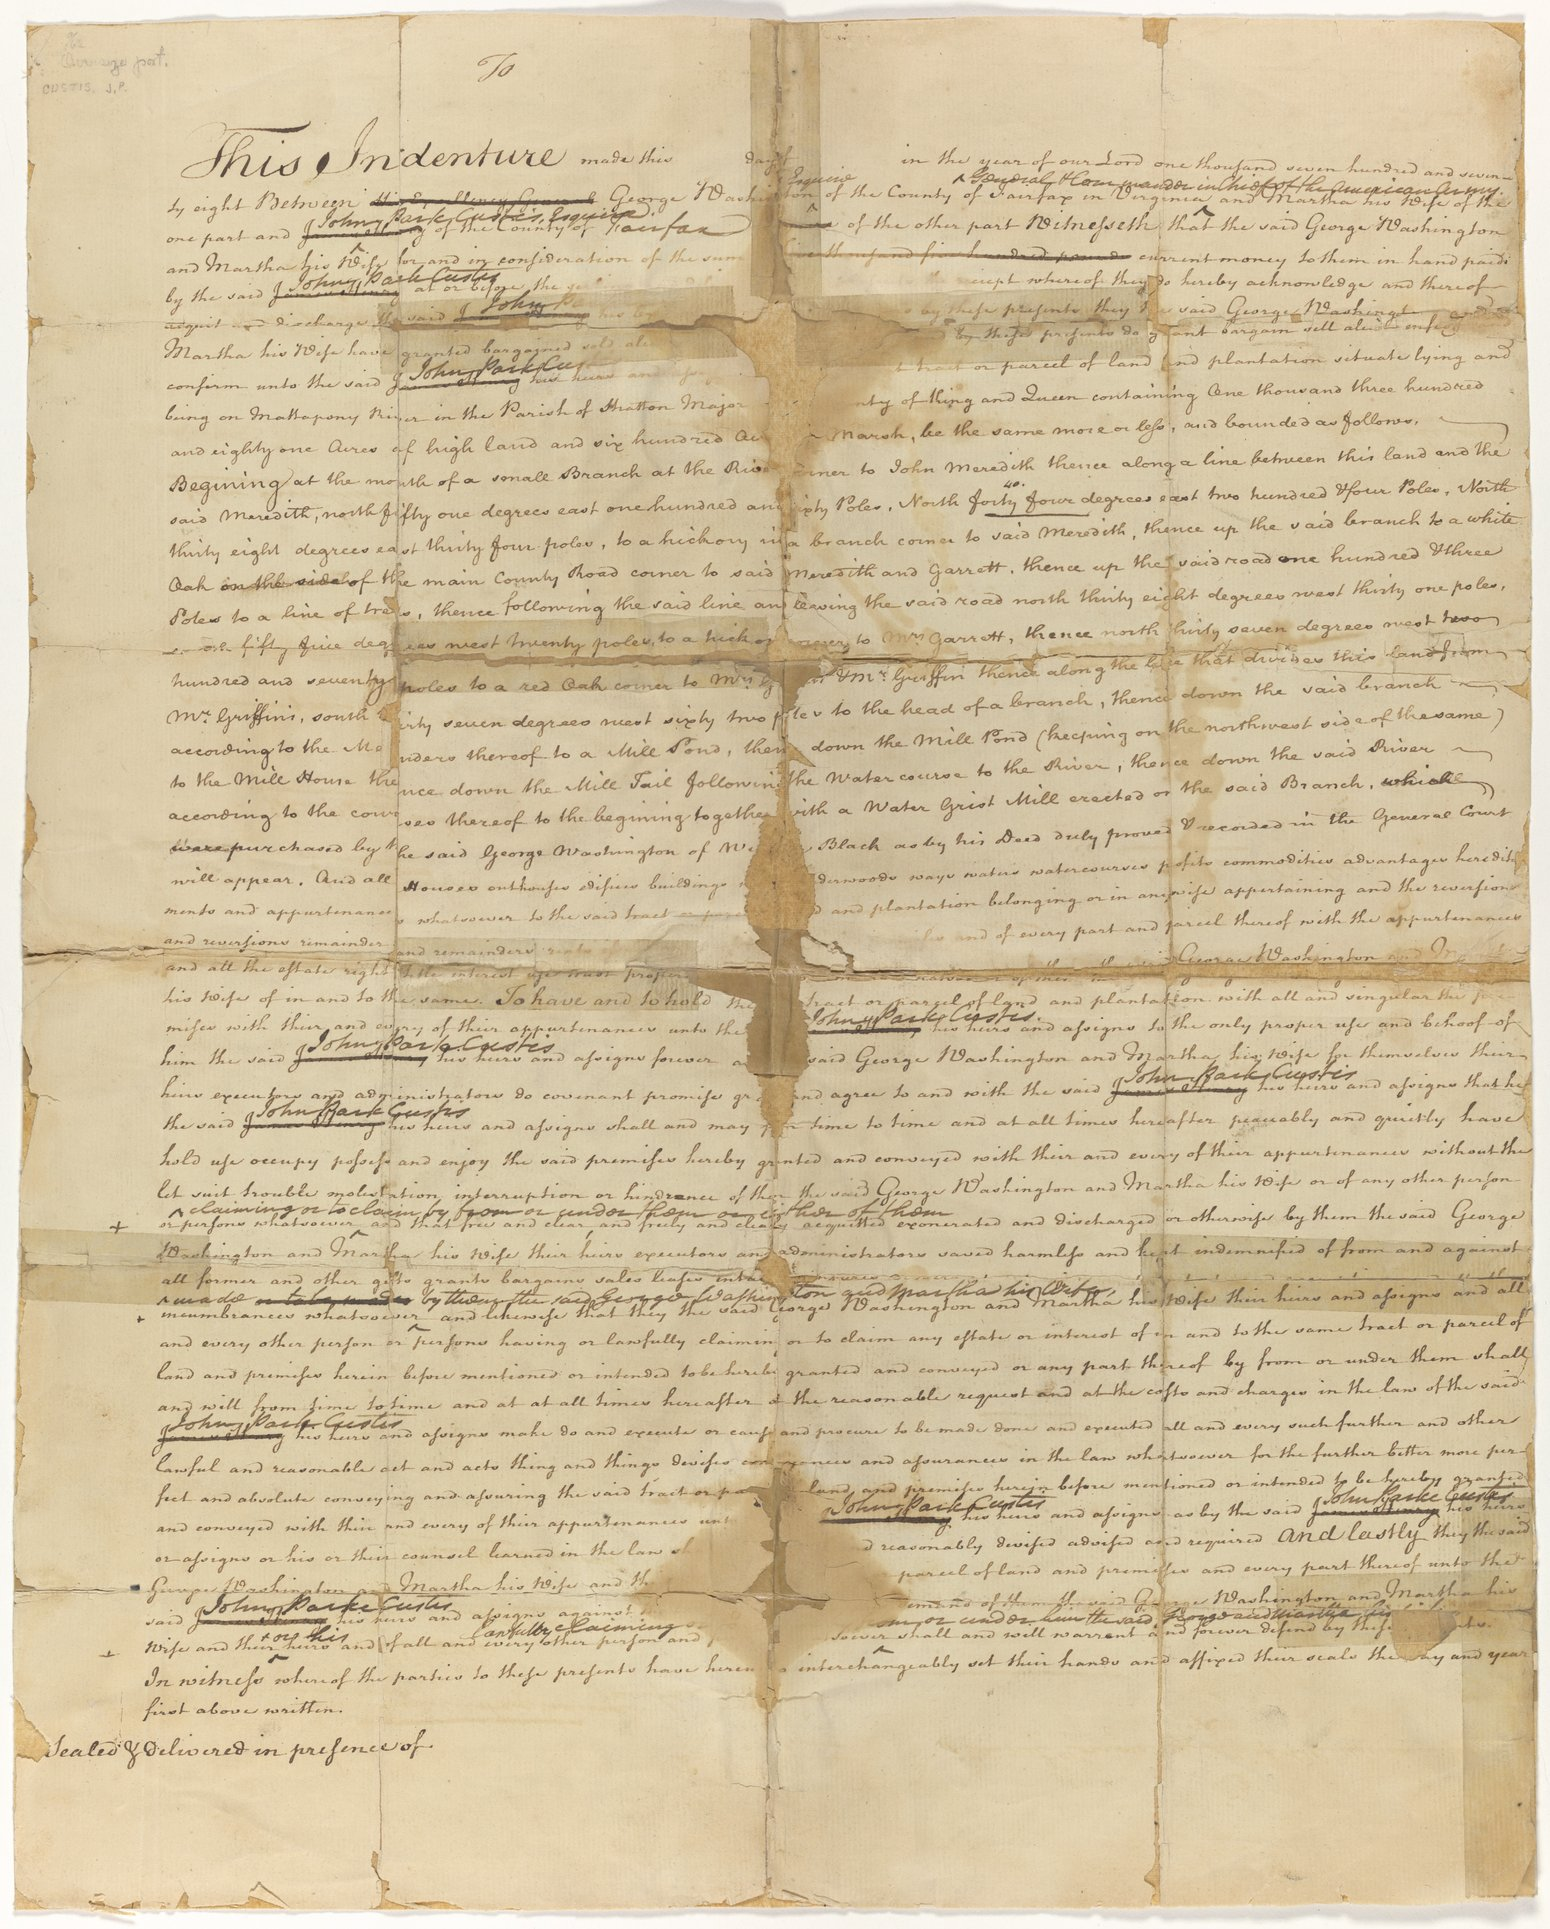 Deed with corrections from George and Martha Washington to John Parke Custis for land in Stratton Major Parish, King and Queen County, Virginia